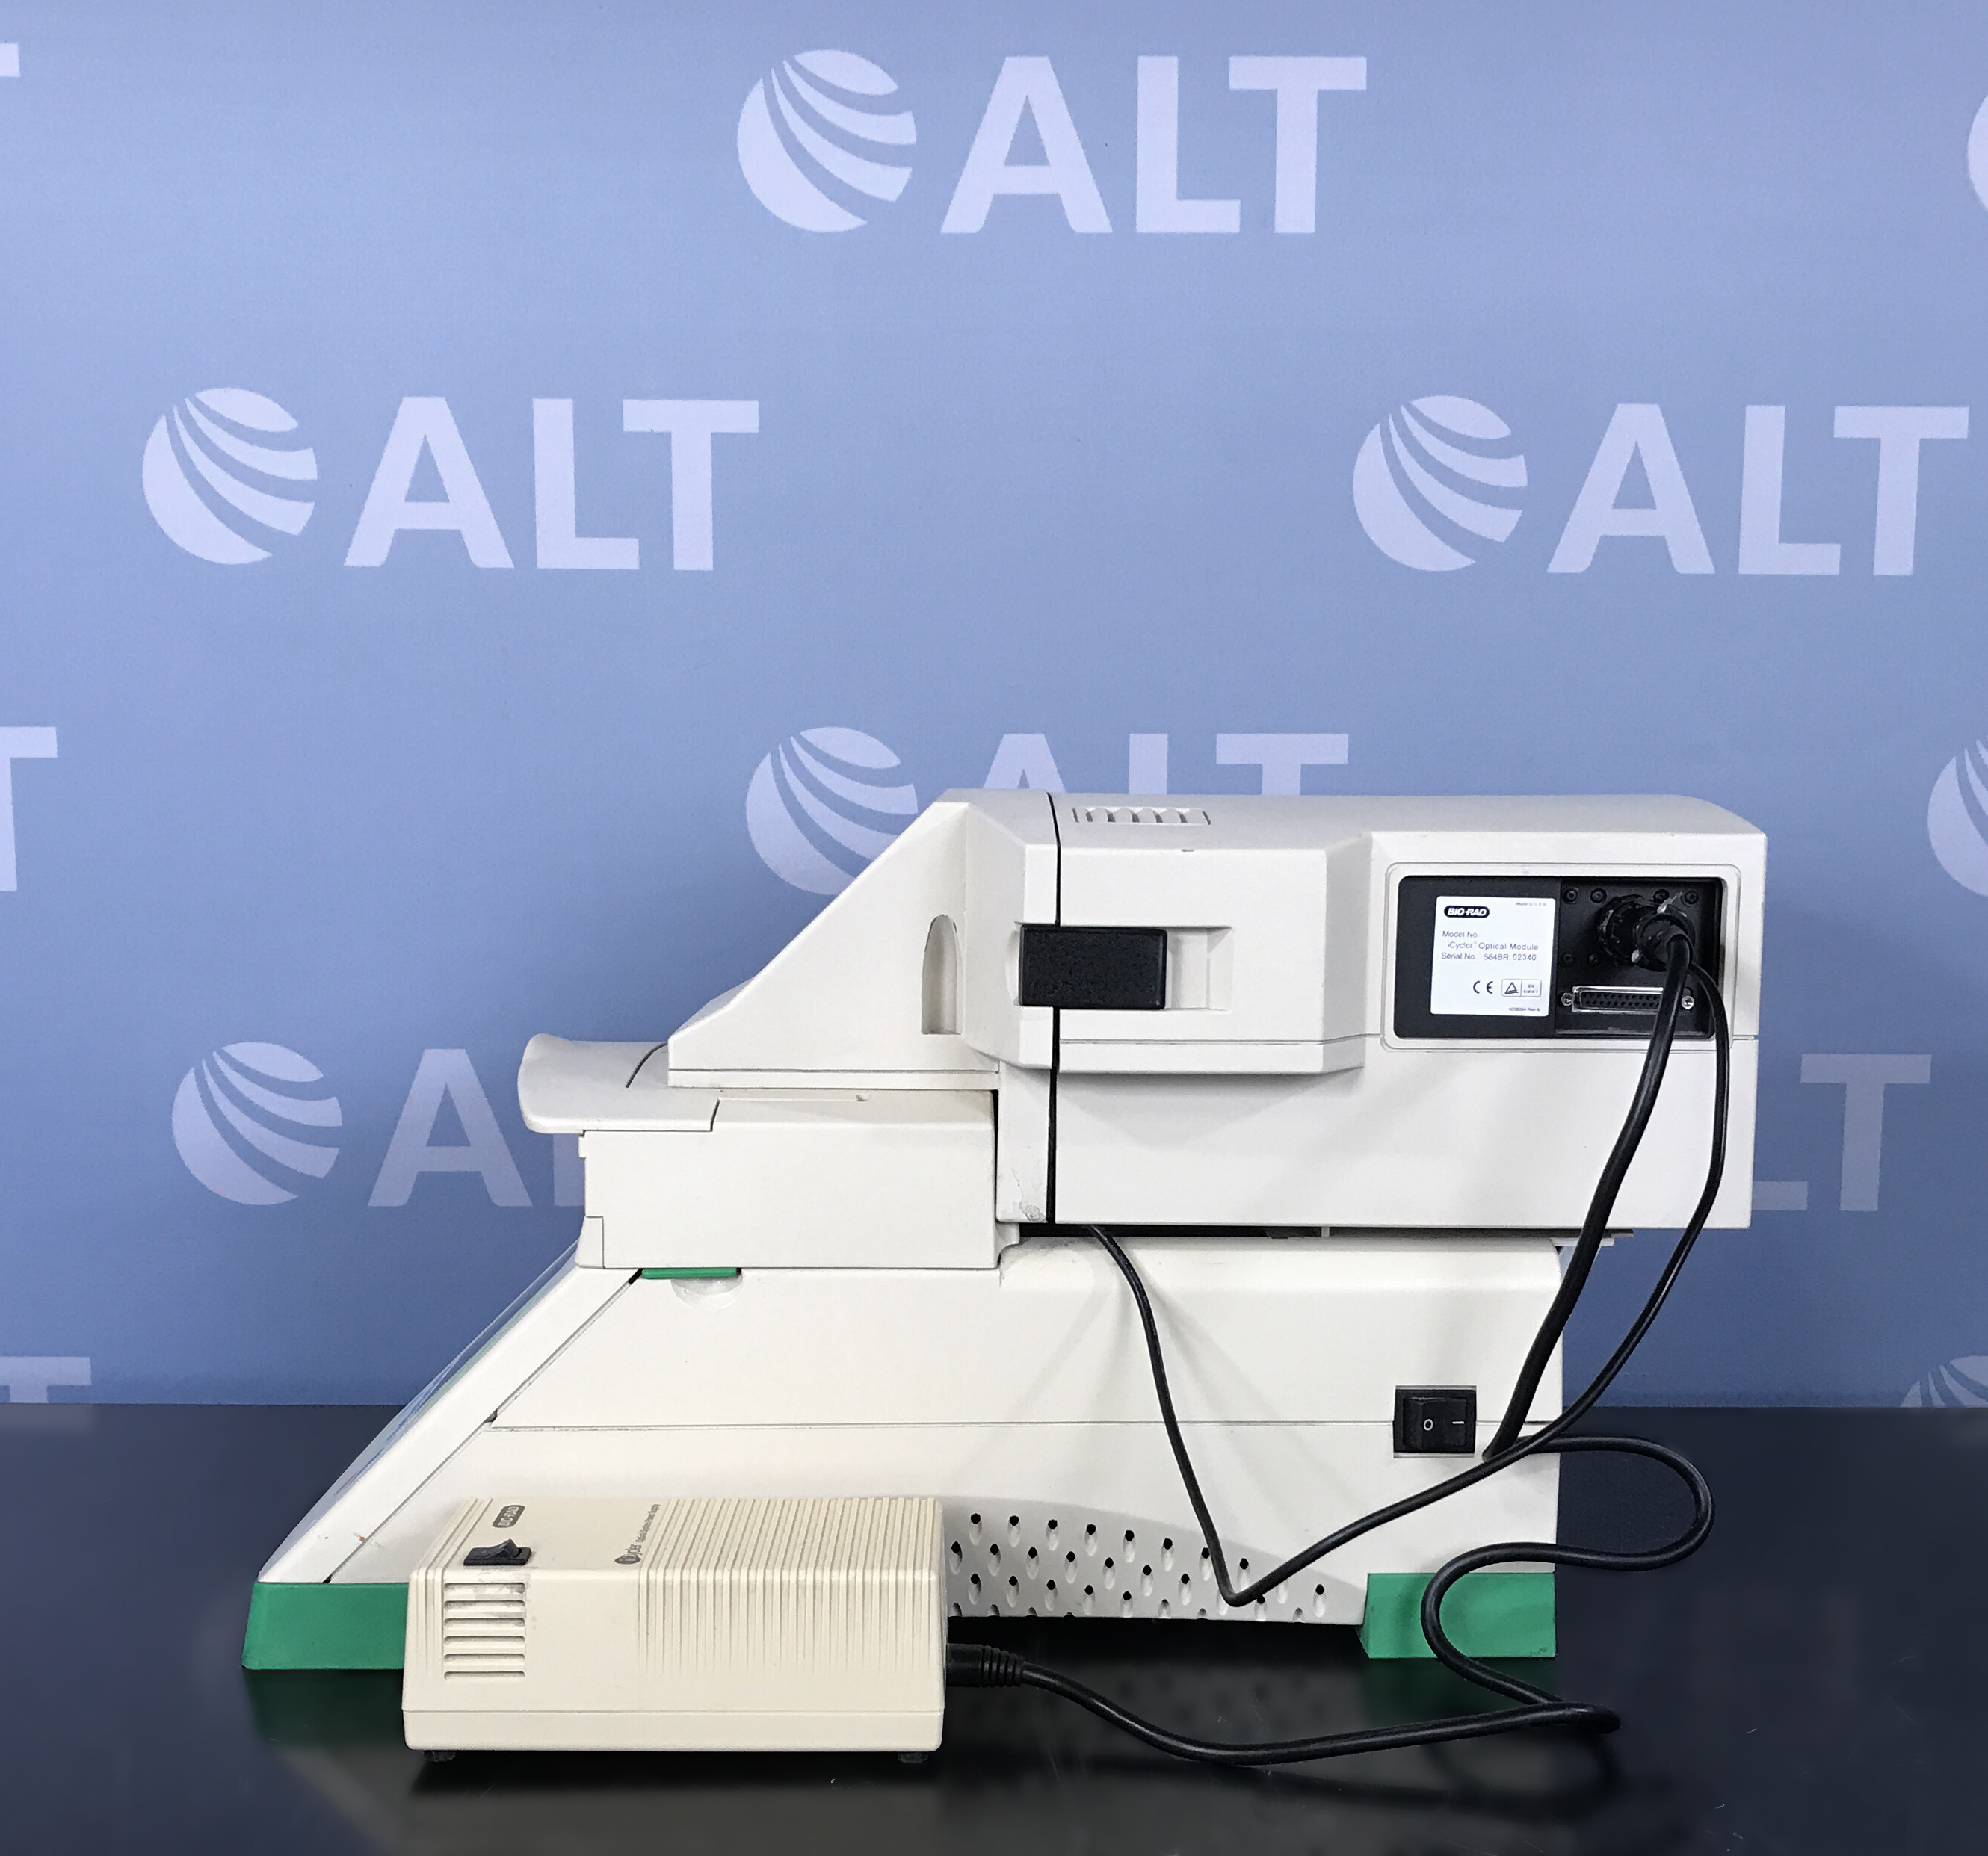 Bio-Rad iCycler Thermal Cycler with iCycler Optical Module Image